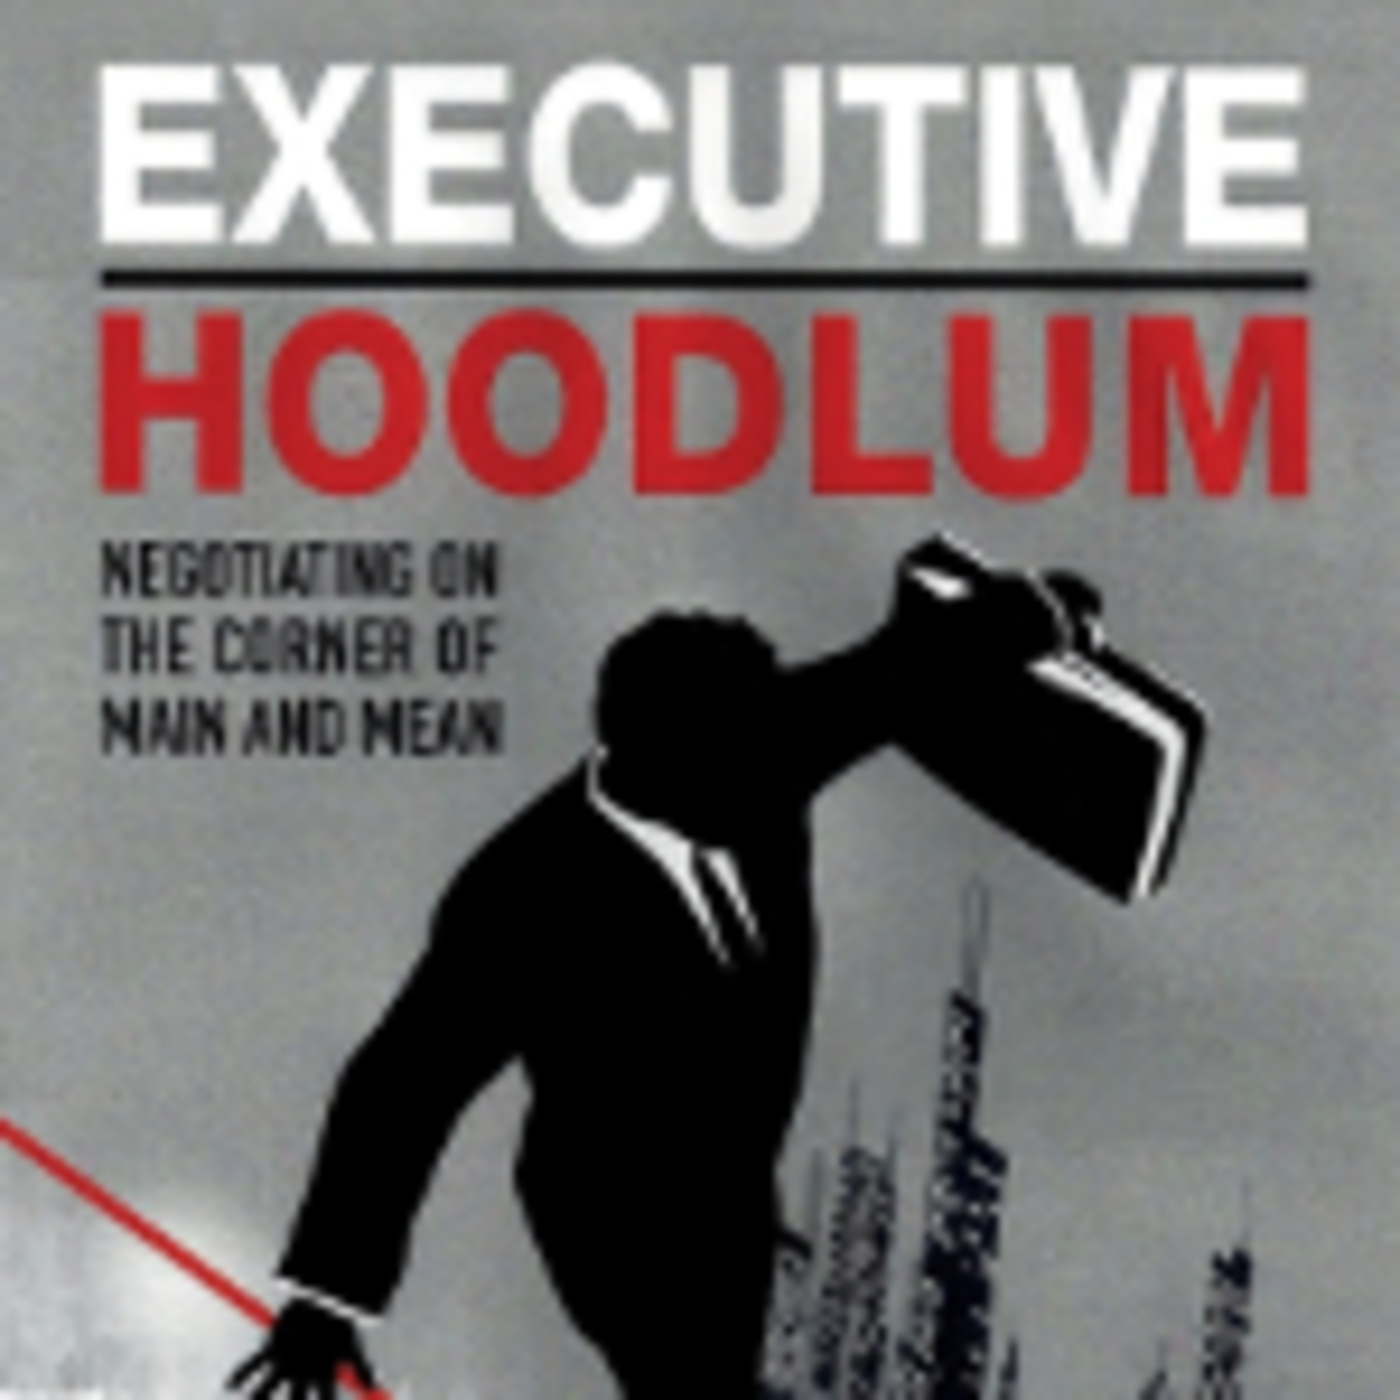 Executive Hoodlum, by author John Costello